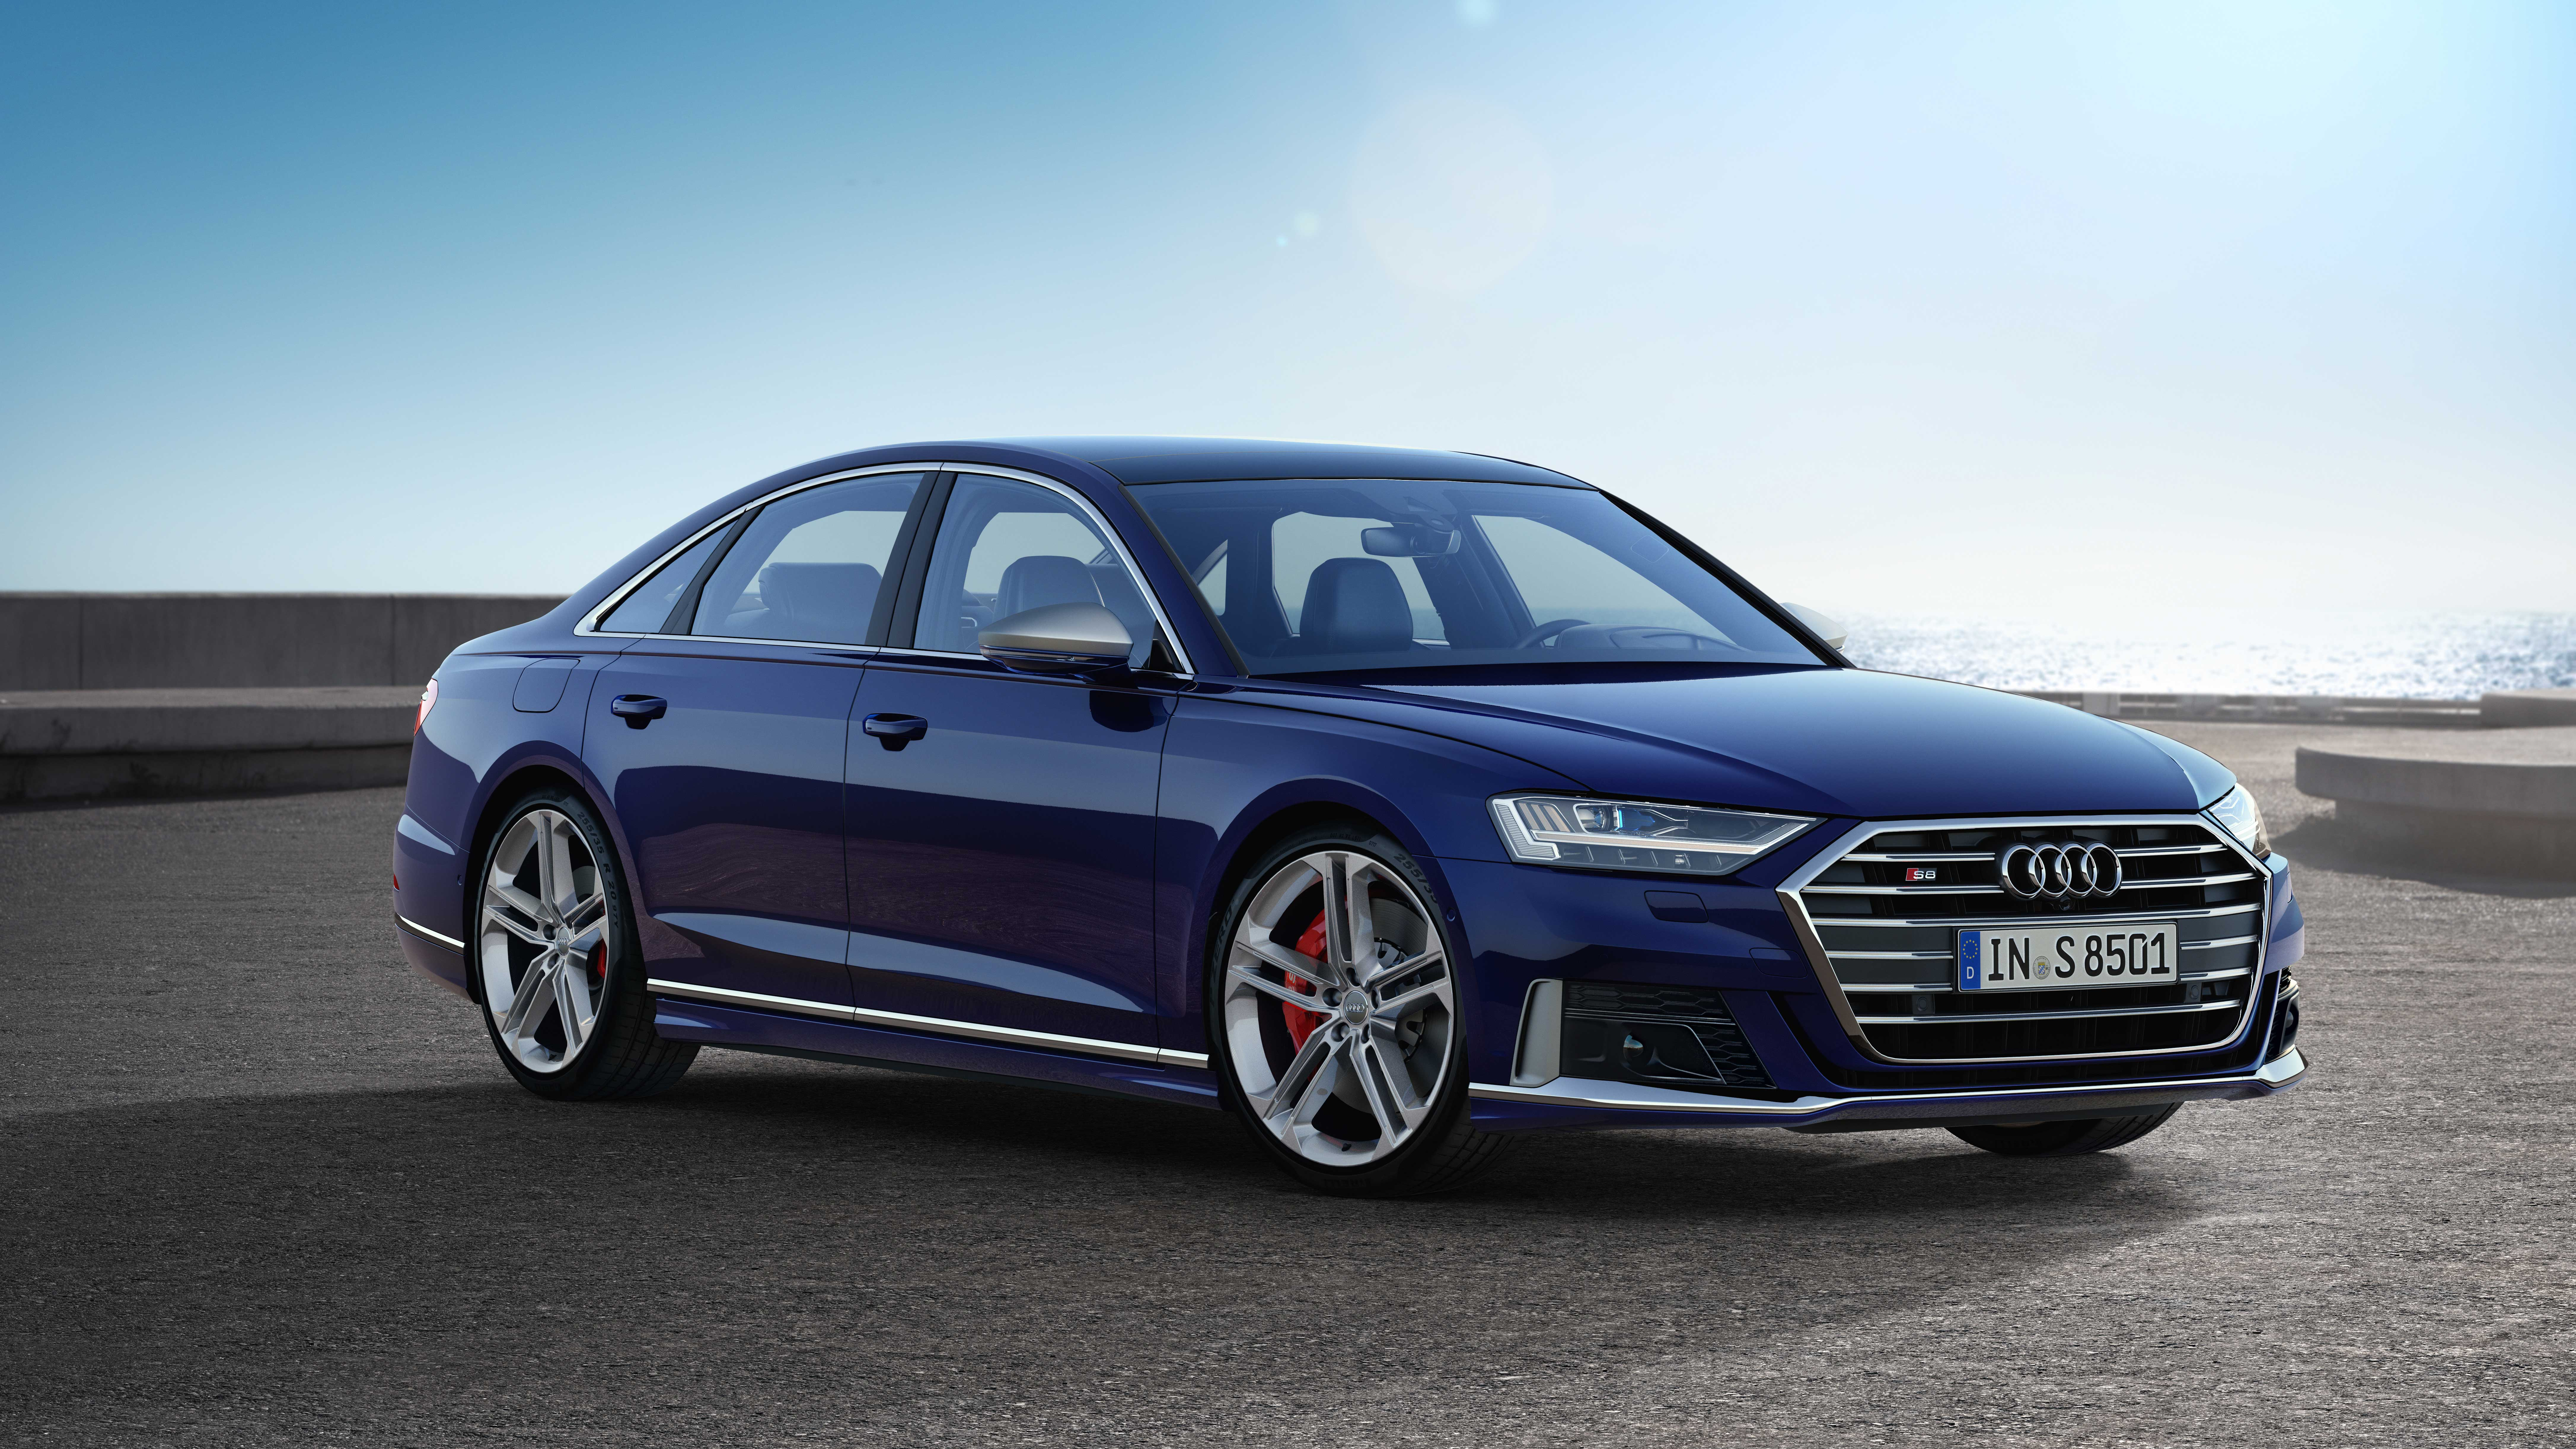 2020 audi s8 debuts with a roaring 571 horsepower v8